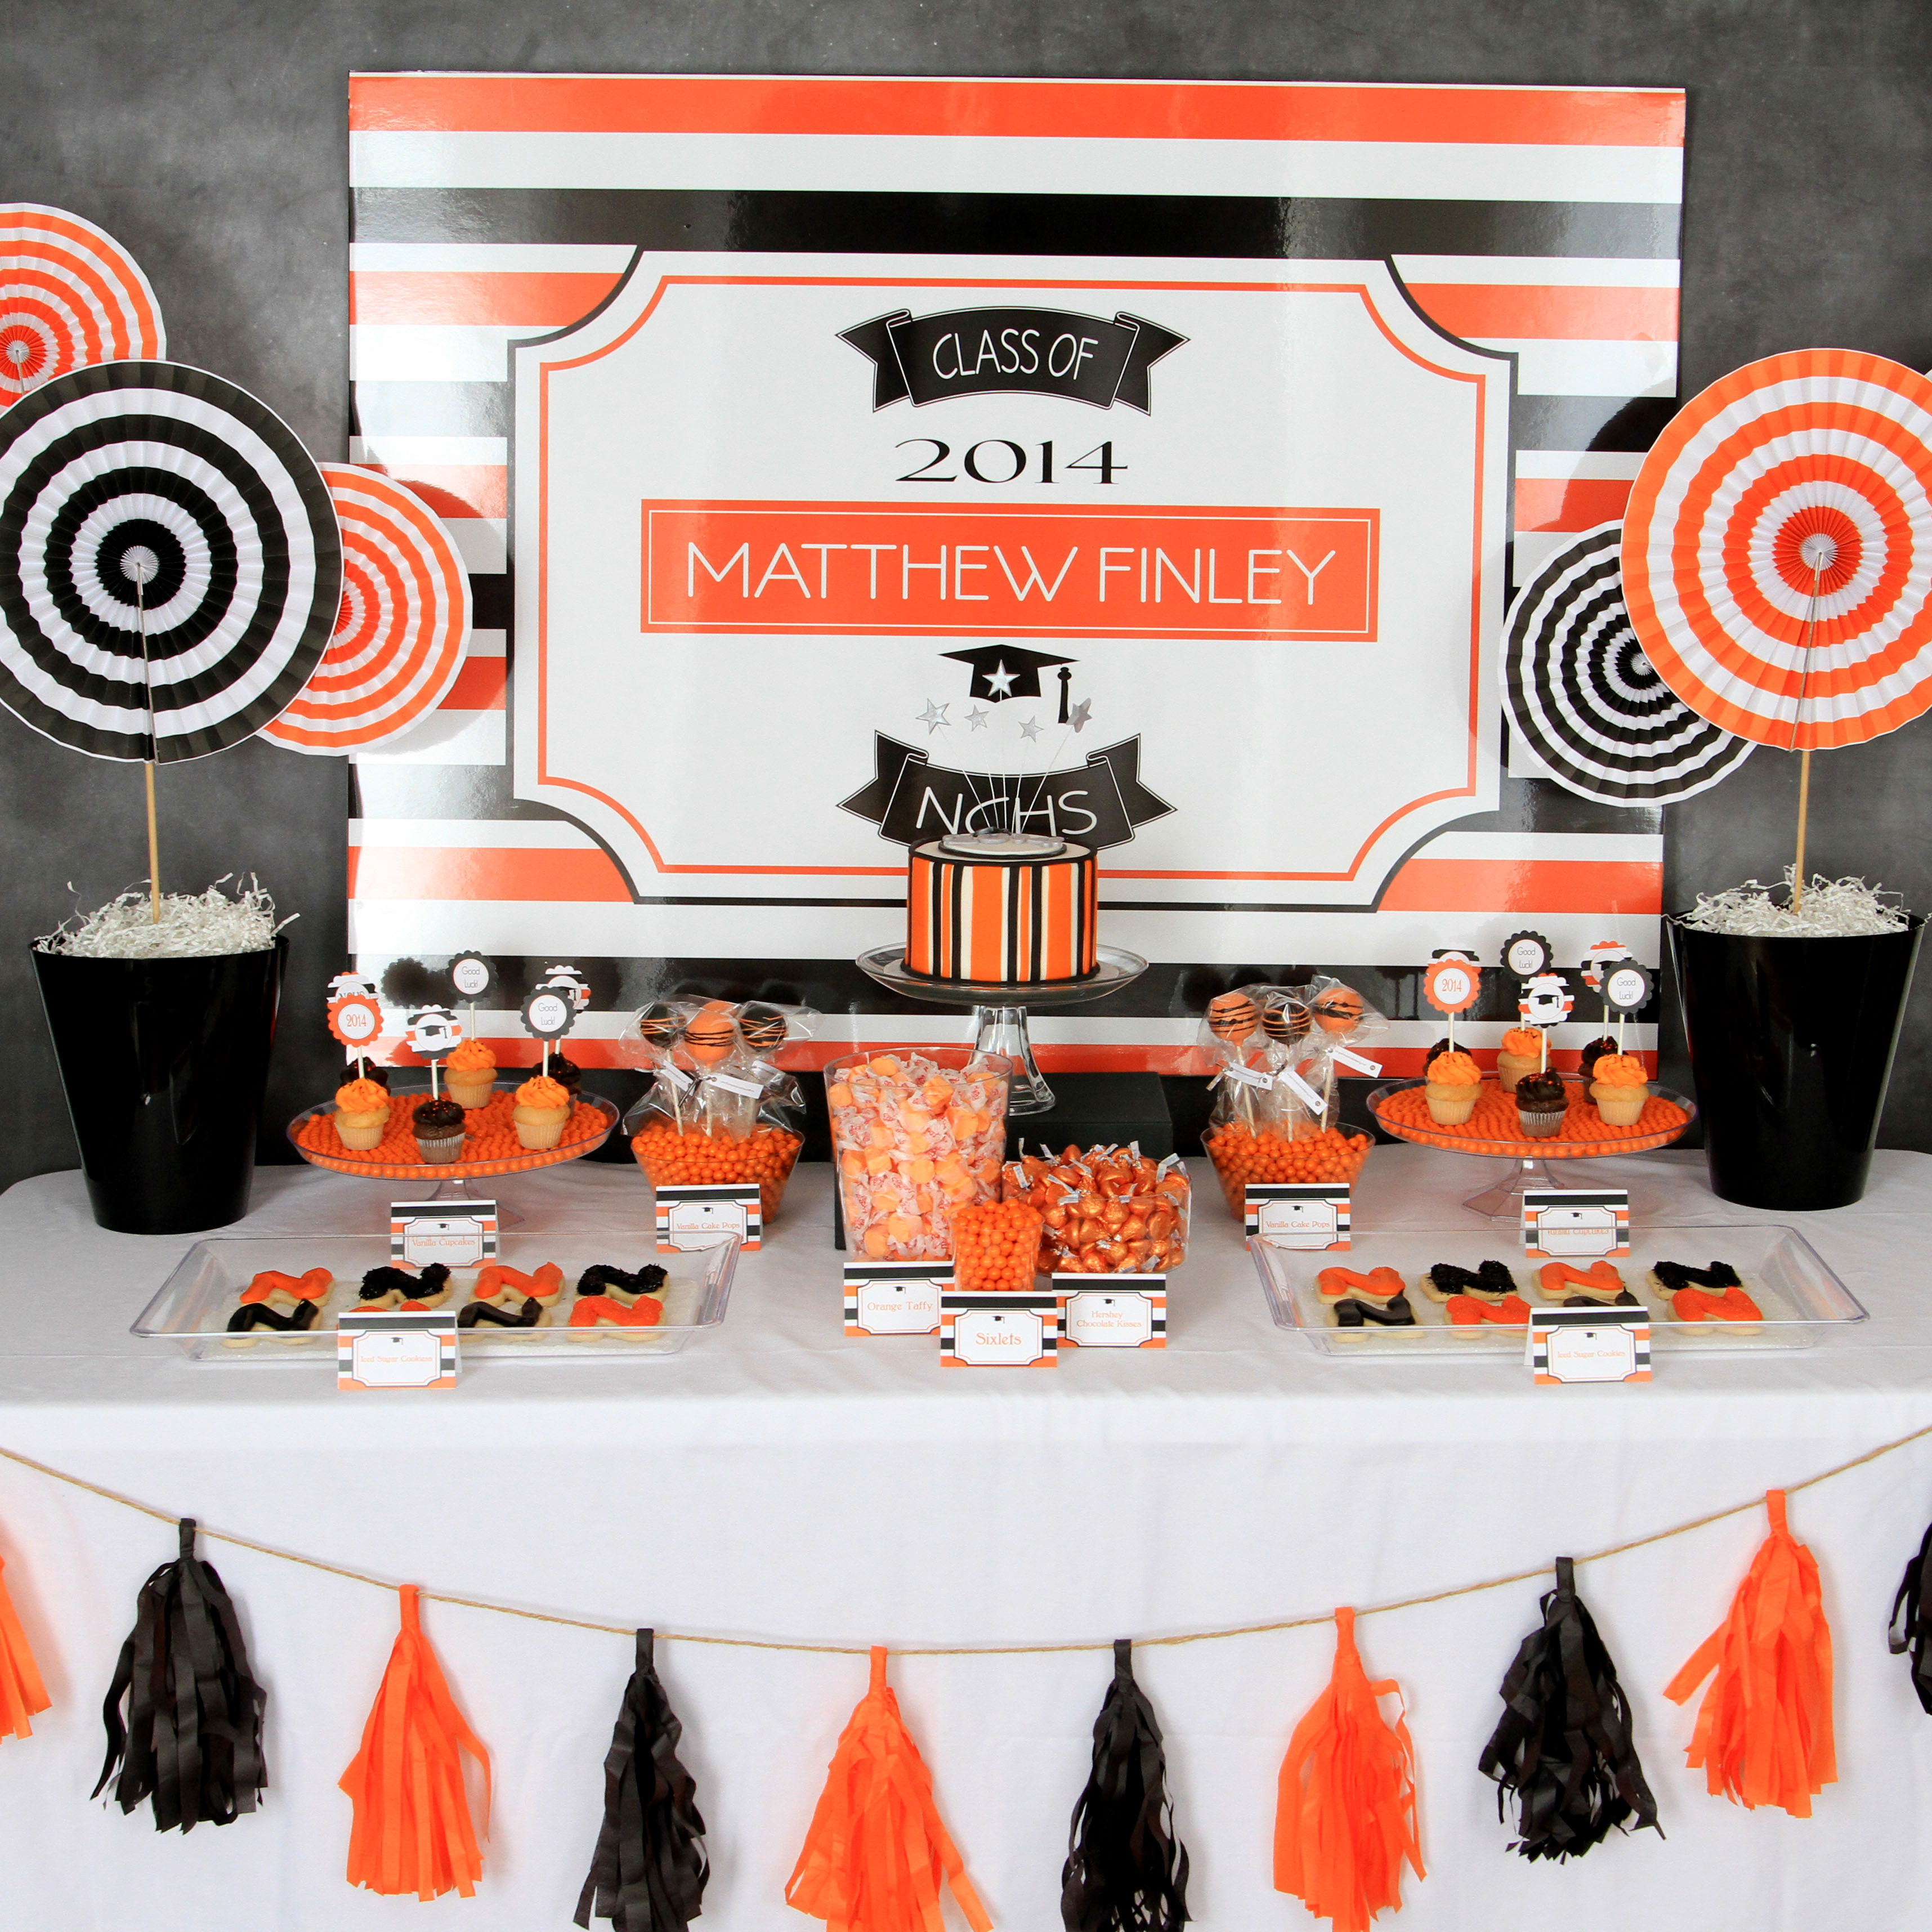 Cool Party Favors | Graduation Party Ideas 2014